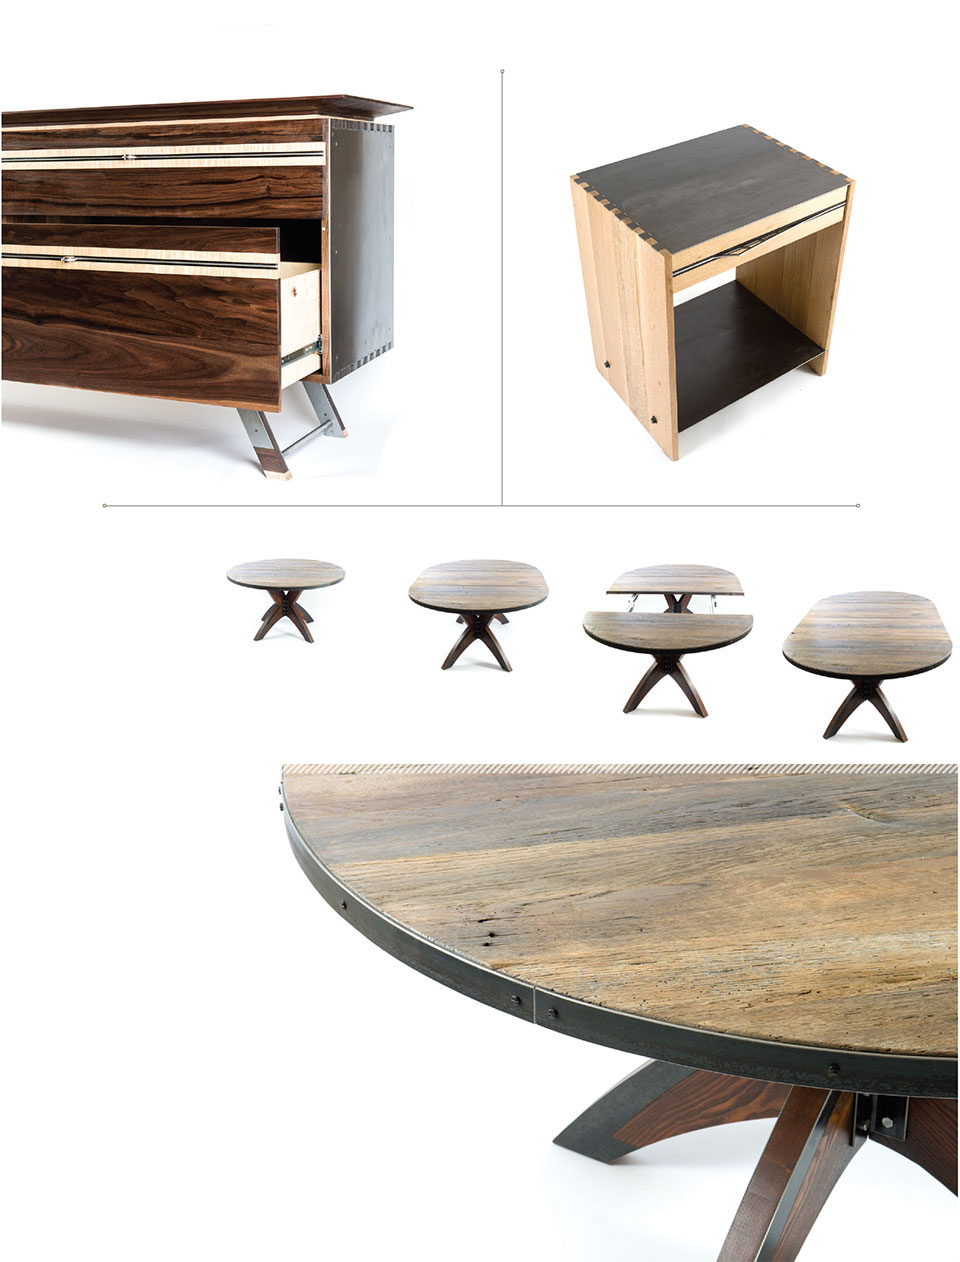 Working with Wood in the Modern West- Sun Valley Dresser and Table